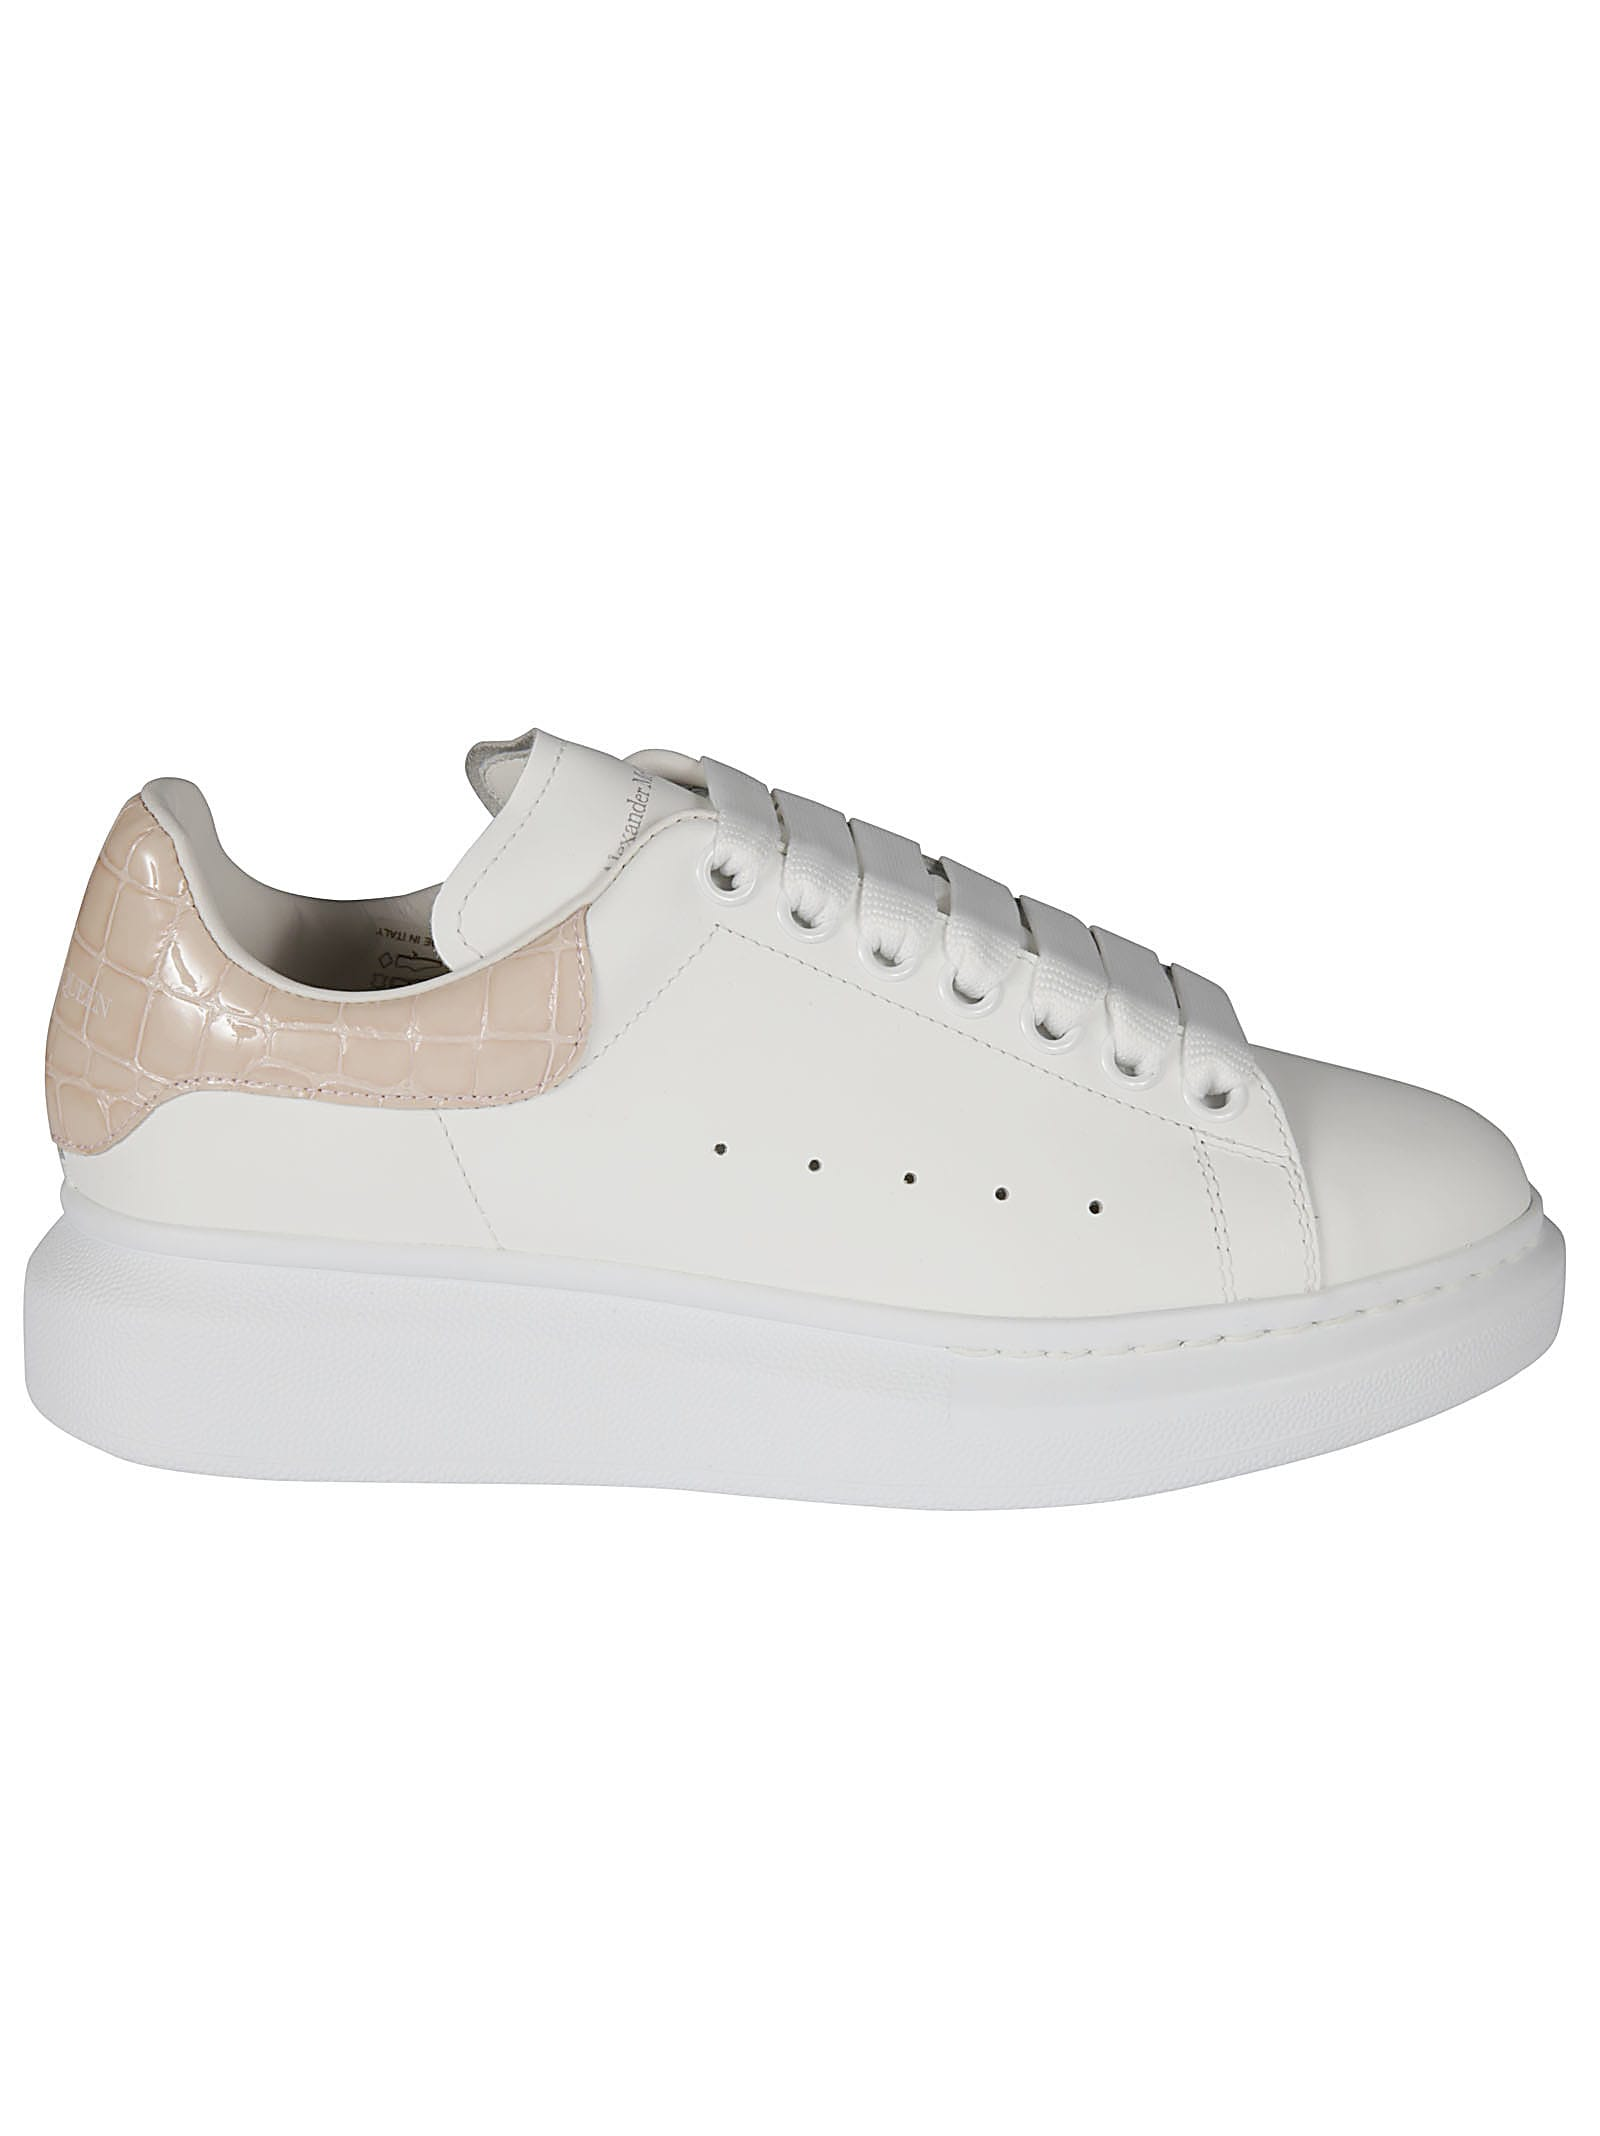 Alexander McQueen Woman White And Crocodile Effect Oversized Sneakers